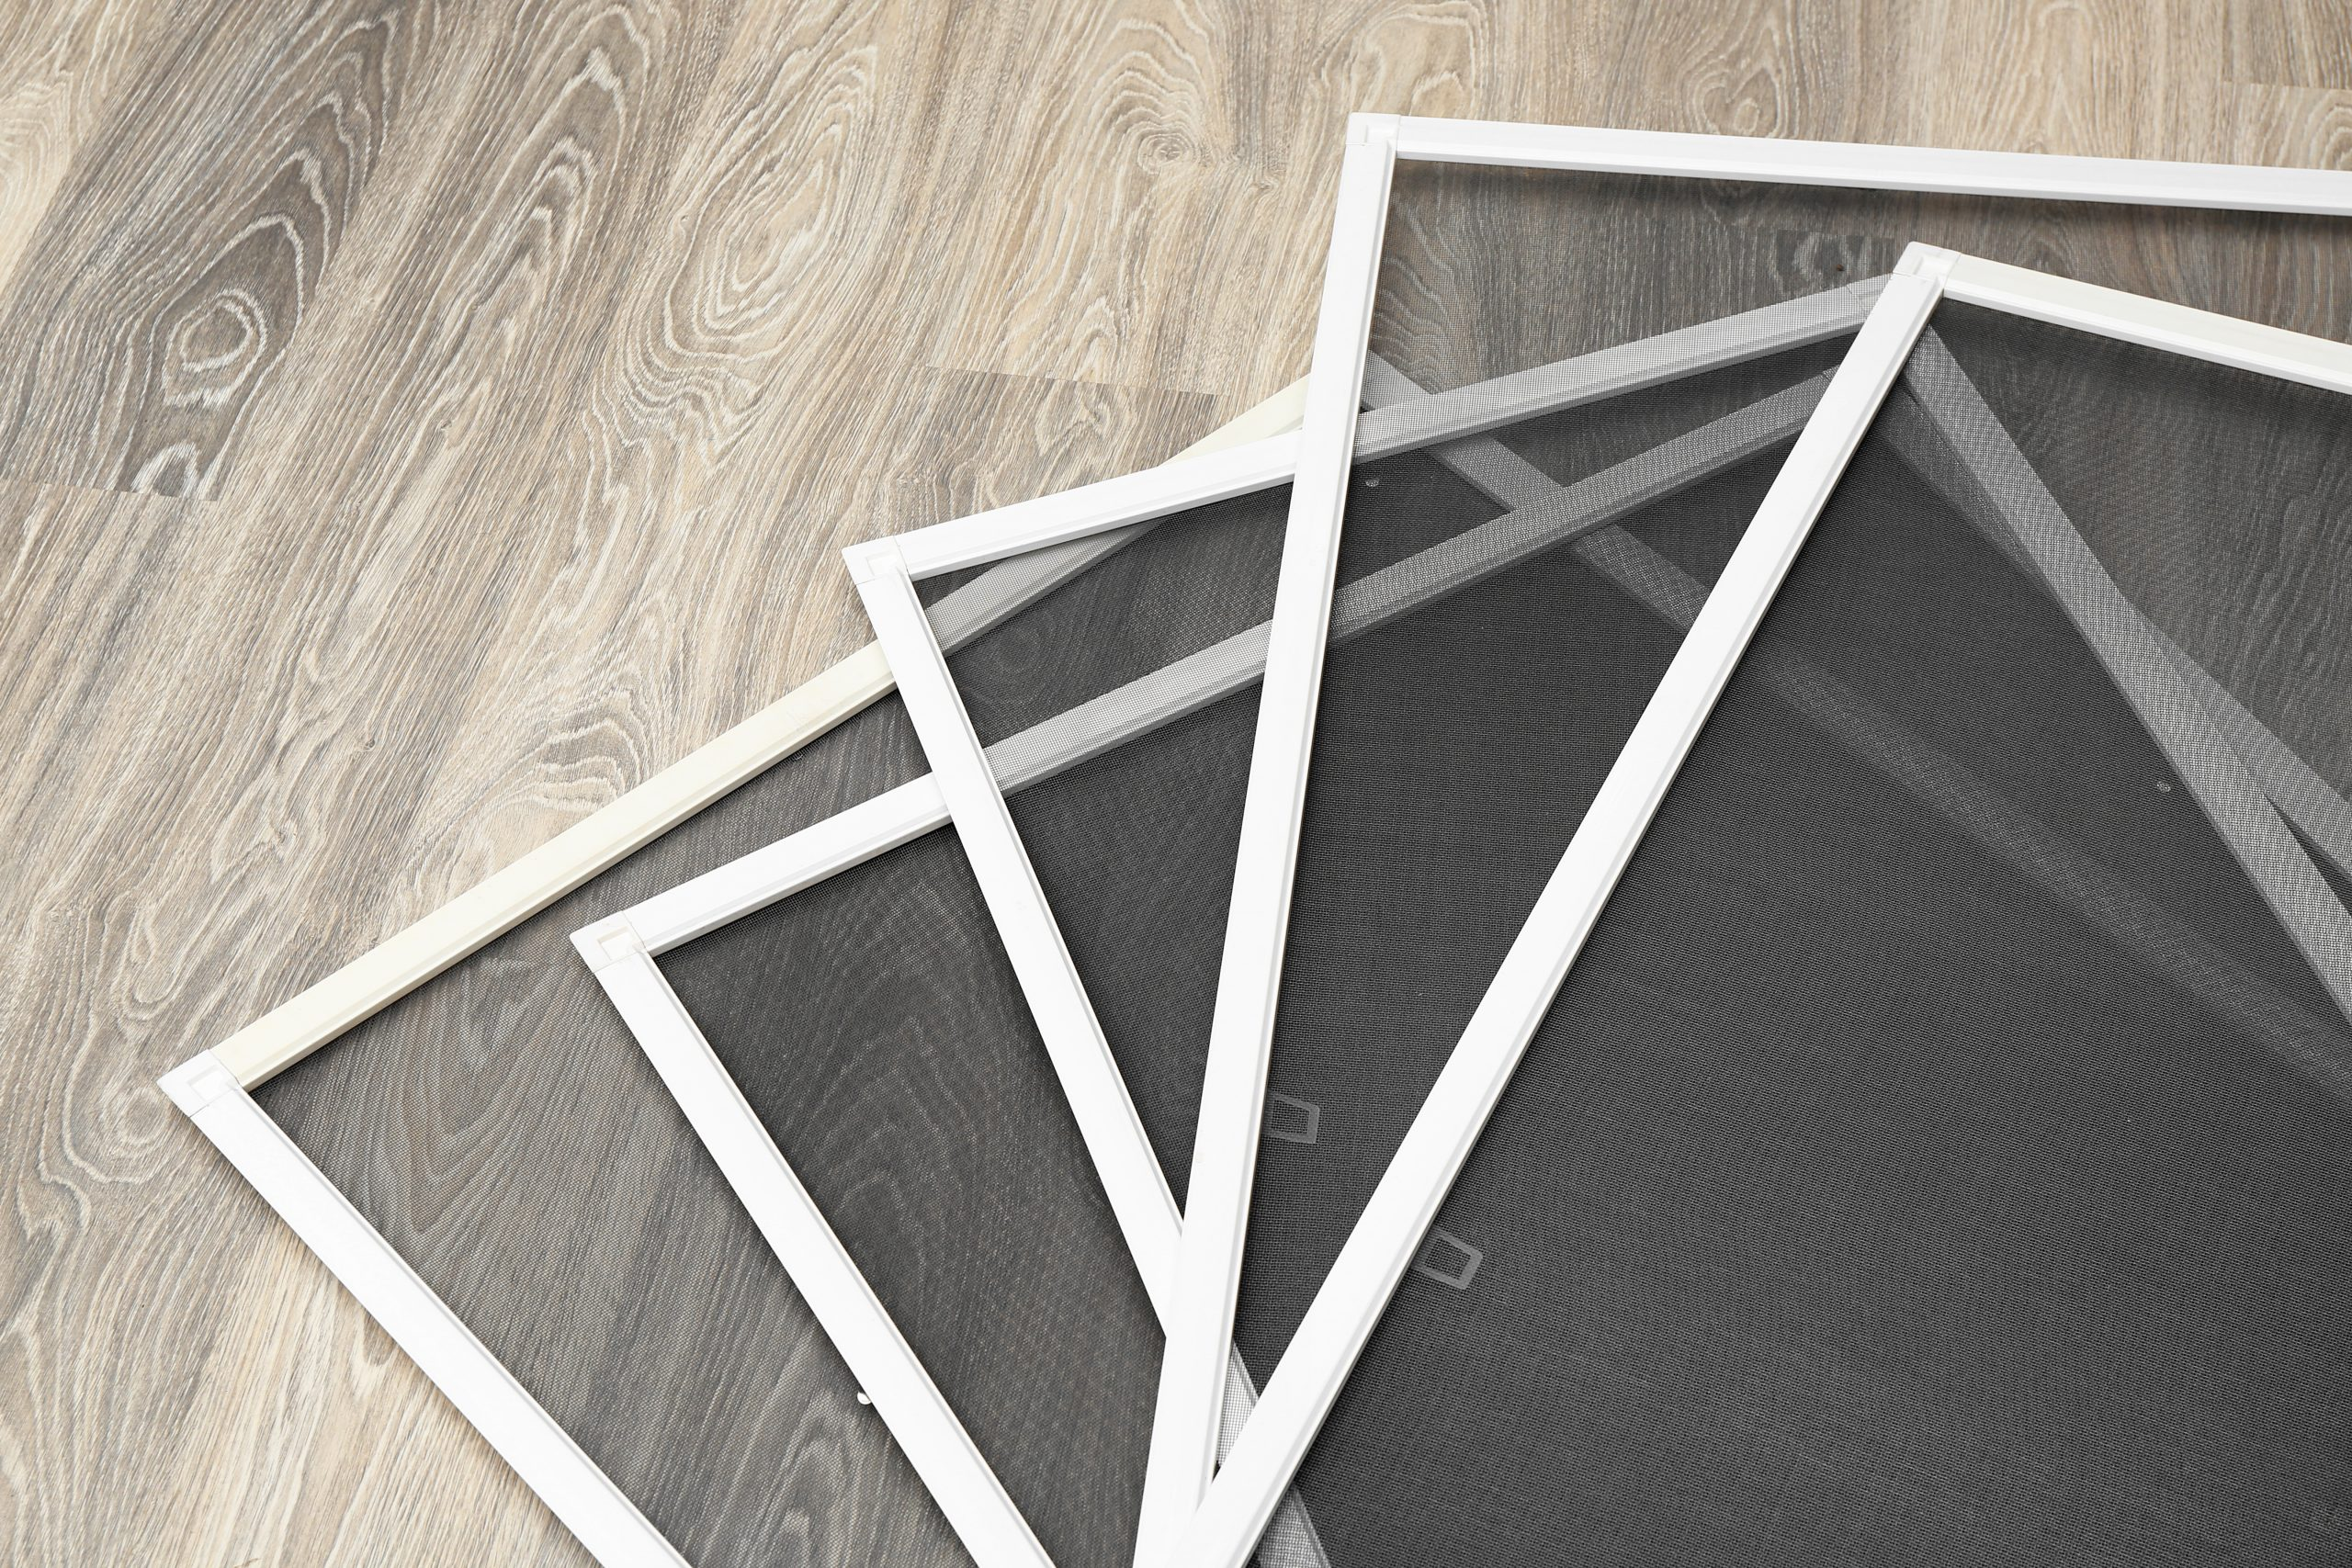 window screens made with fiberglass mesh